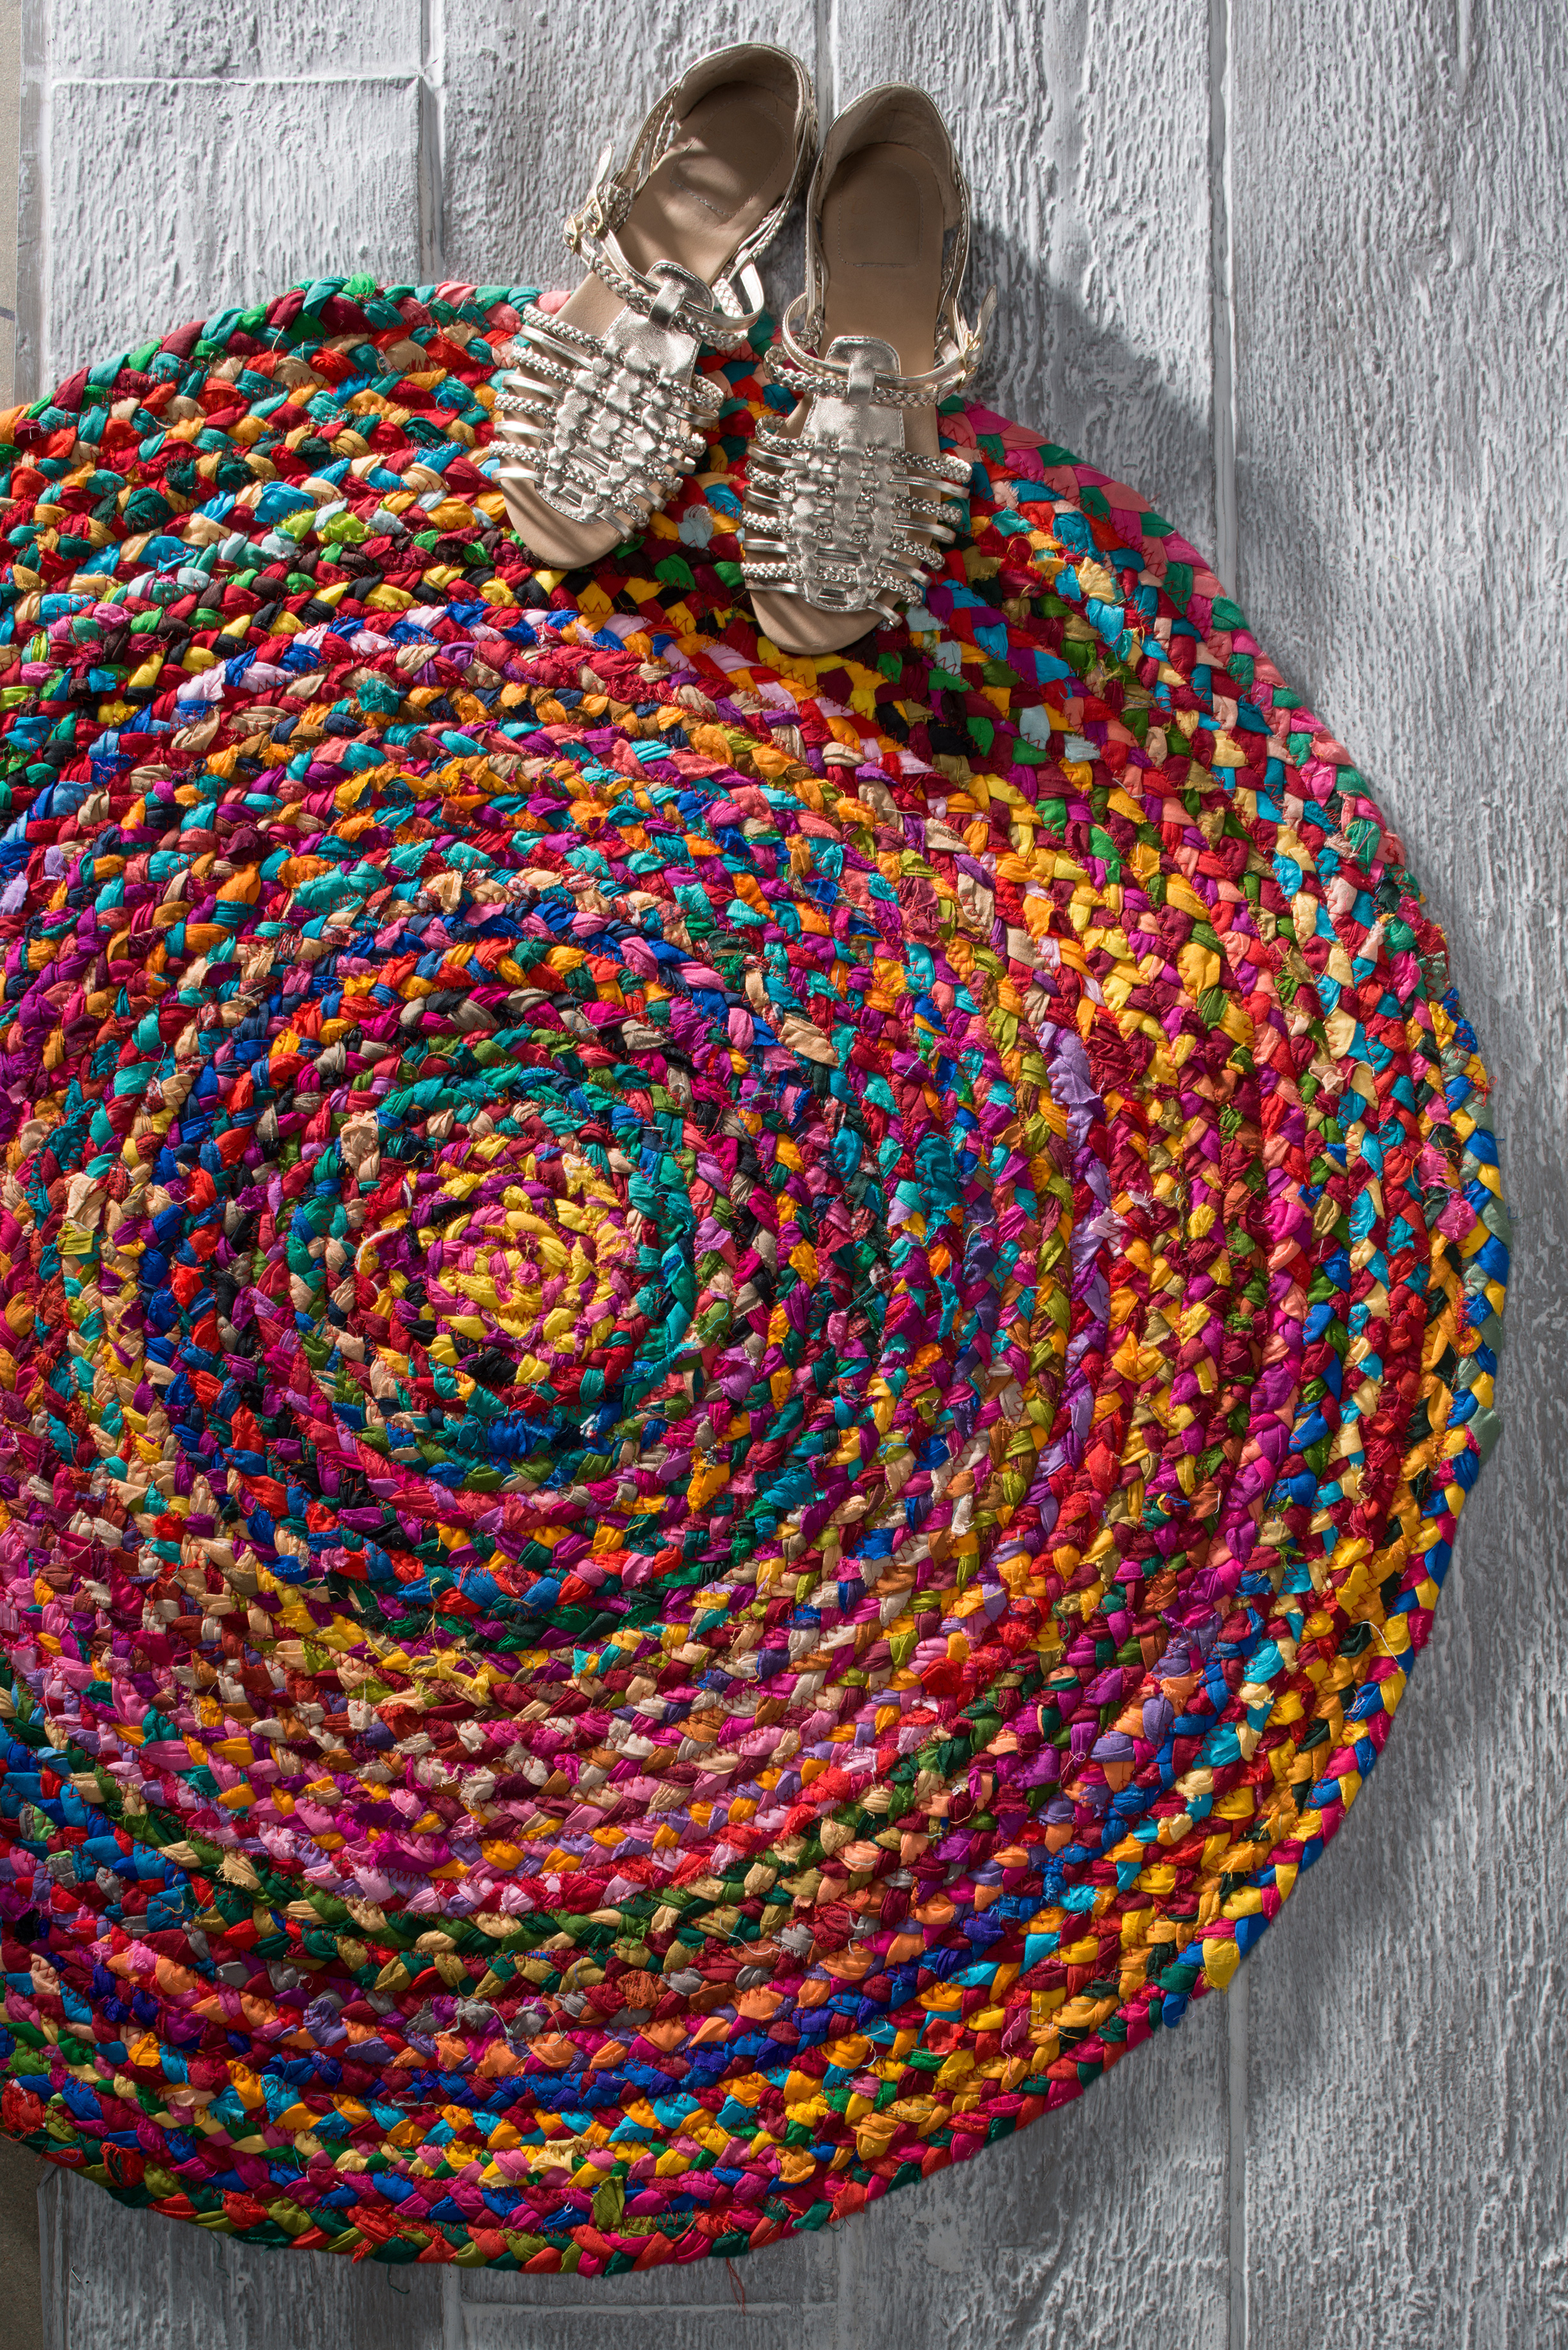 The Home Furnishings Company Circular Multi Colour Recycled Cotton Chindi Rug